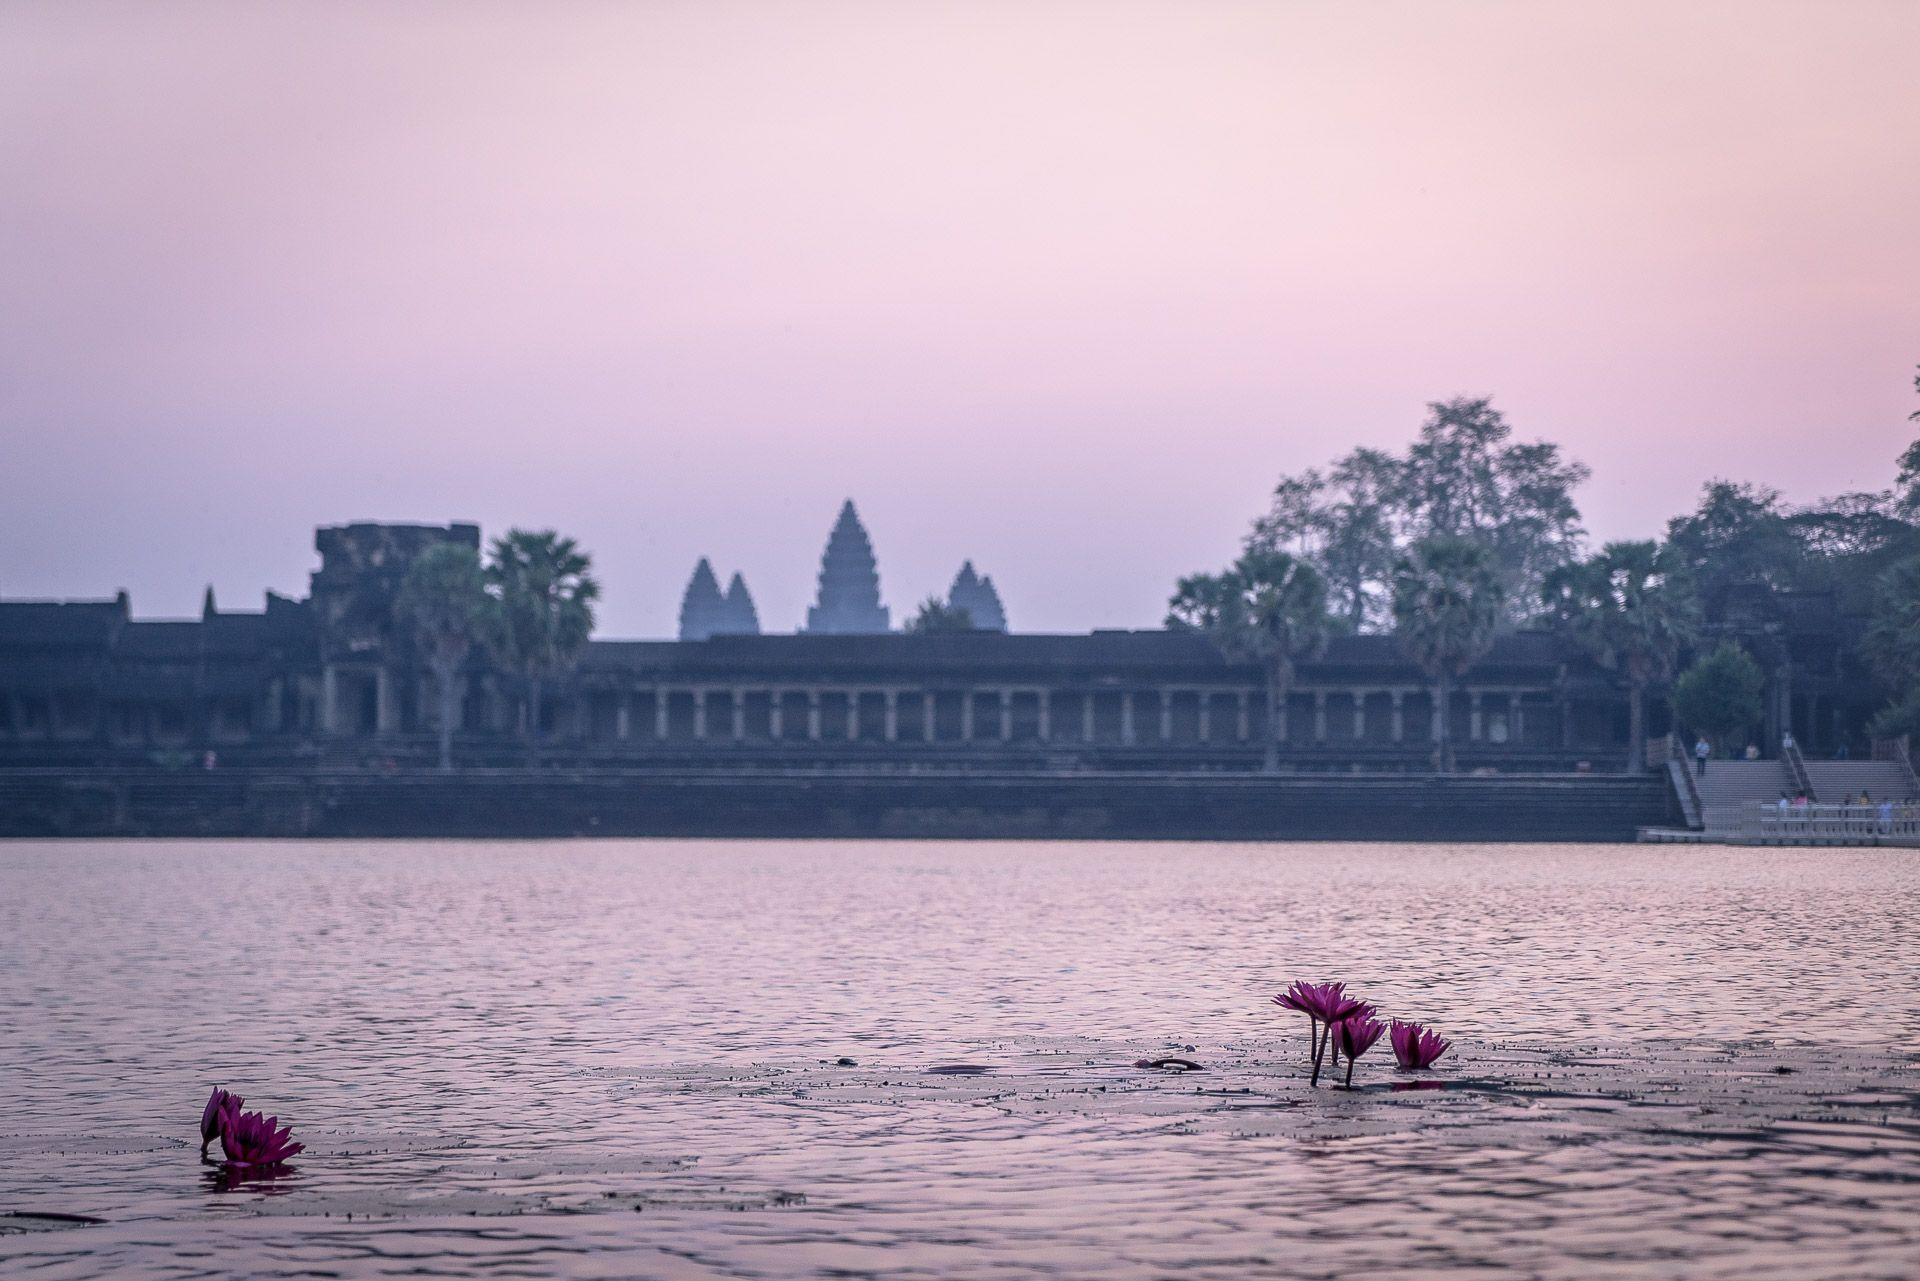 Lesvoyageuses-guide-voyage-Siem-reap-angkor-temples-Cambodge-29